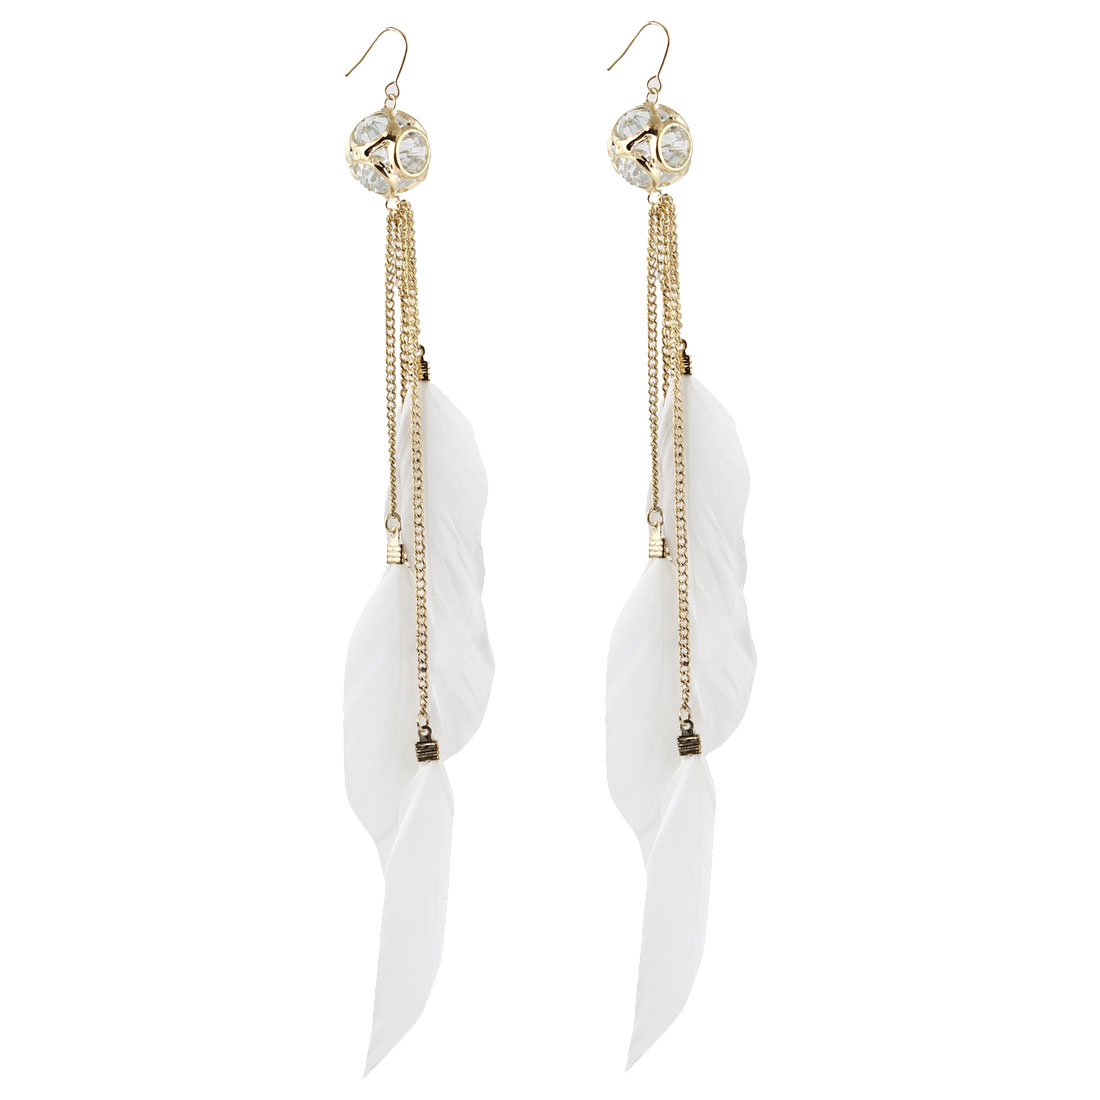 Pair Chain Connect White Feather Pendant Fish Hook Eardrop for Lady